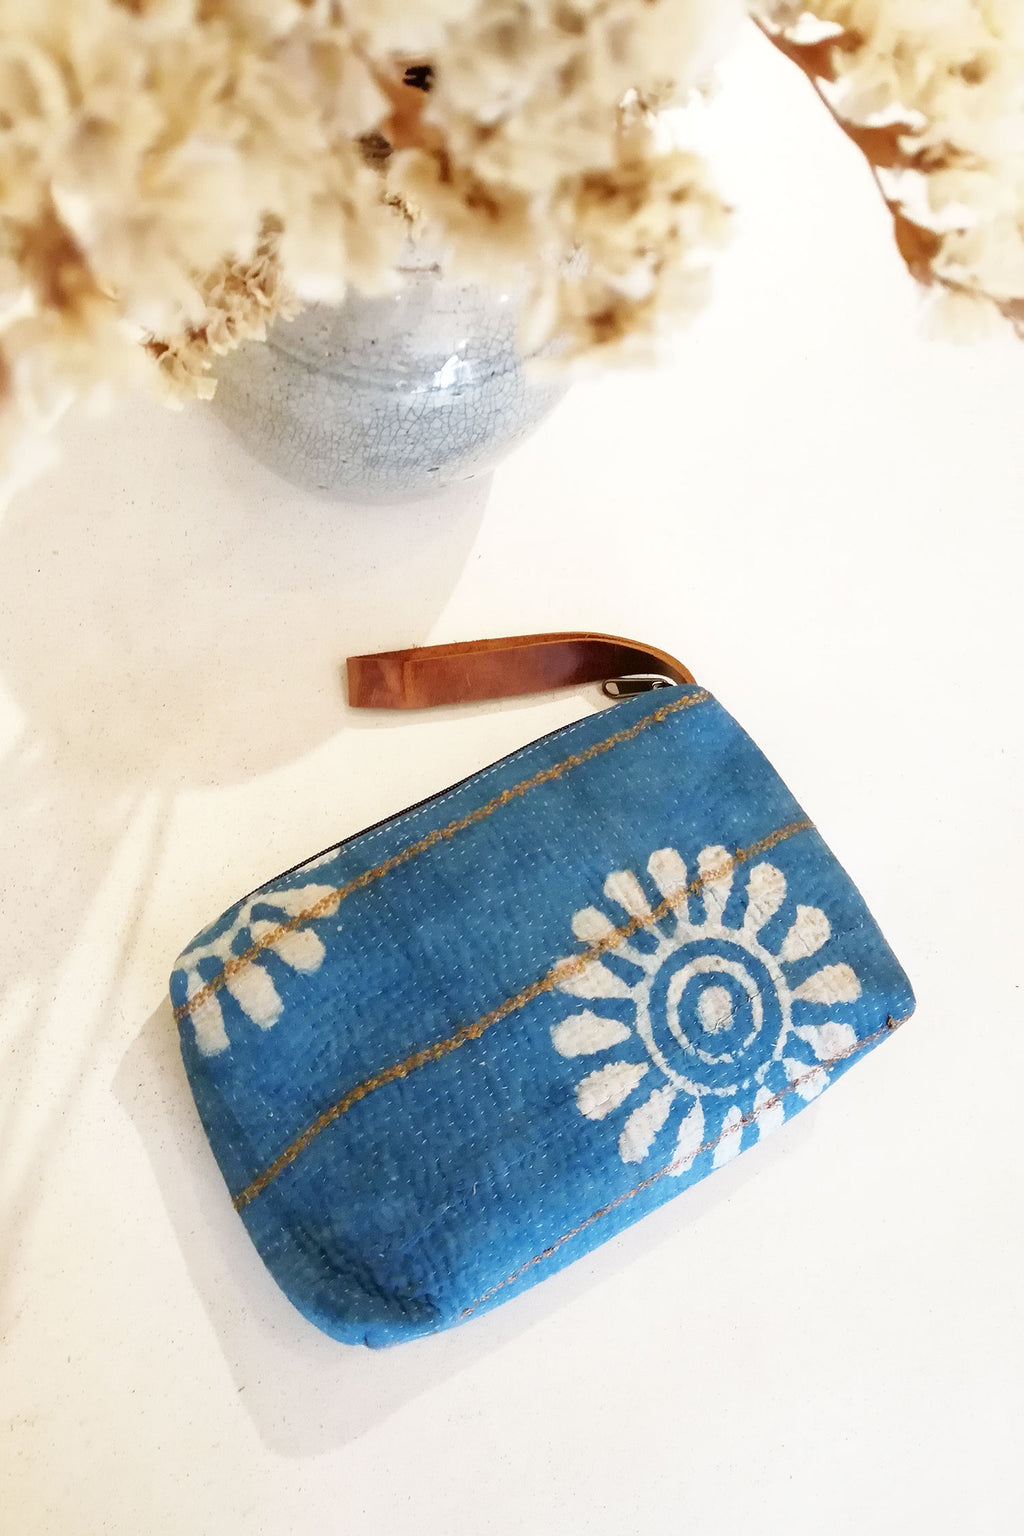 Small Boho Clutch Bag in Indigo Block Print Fabric